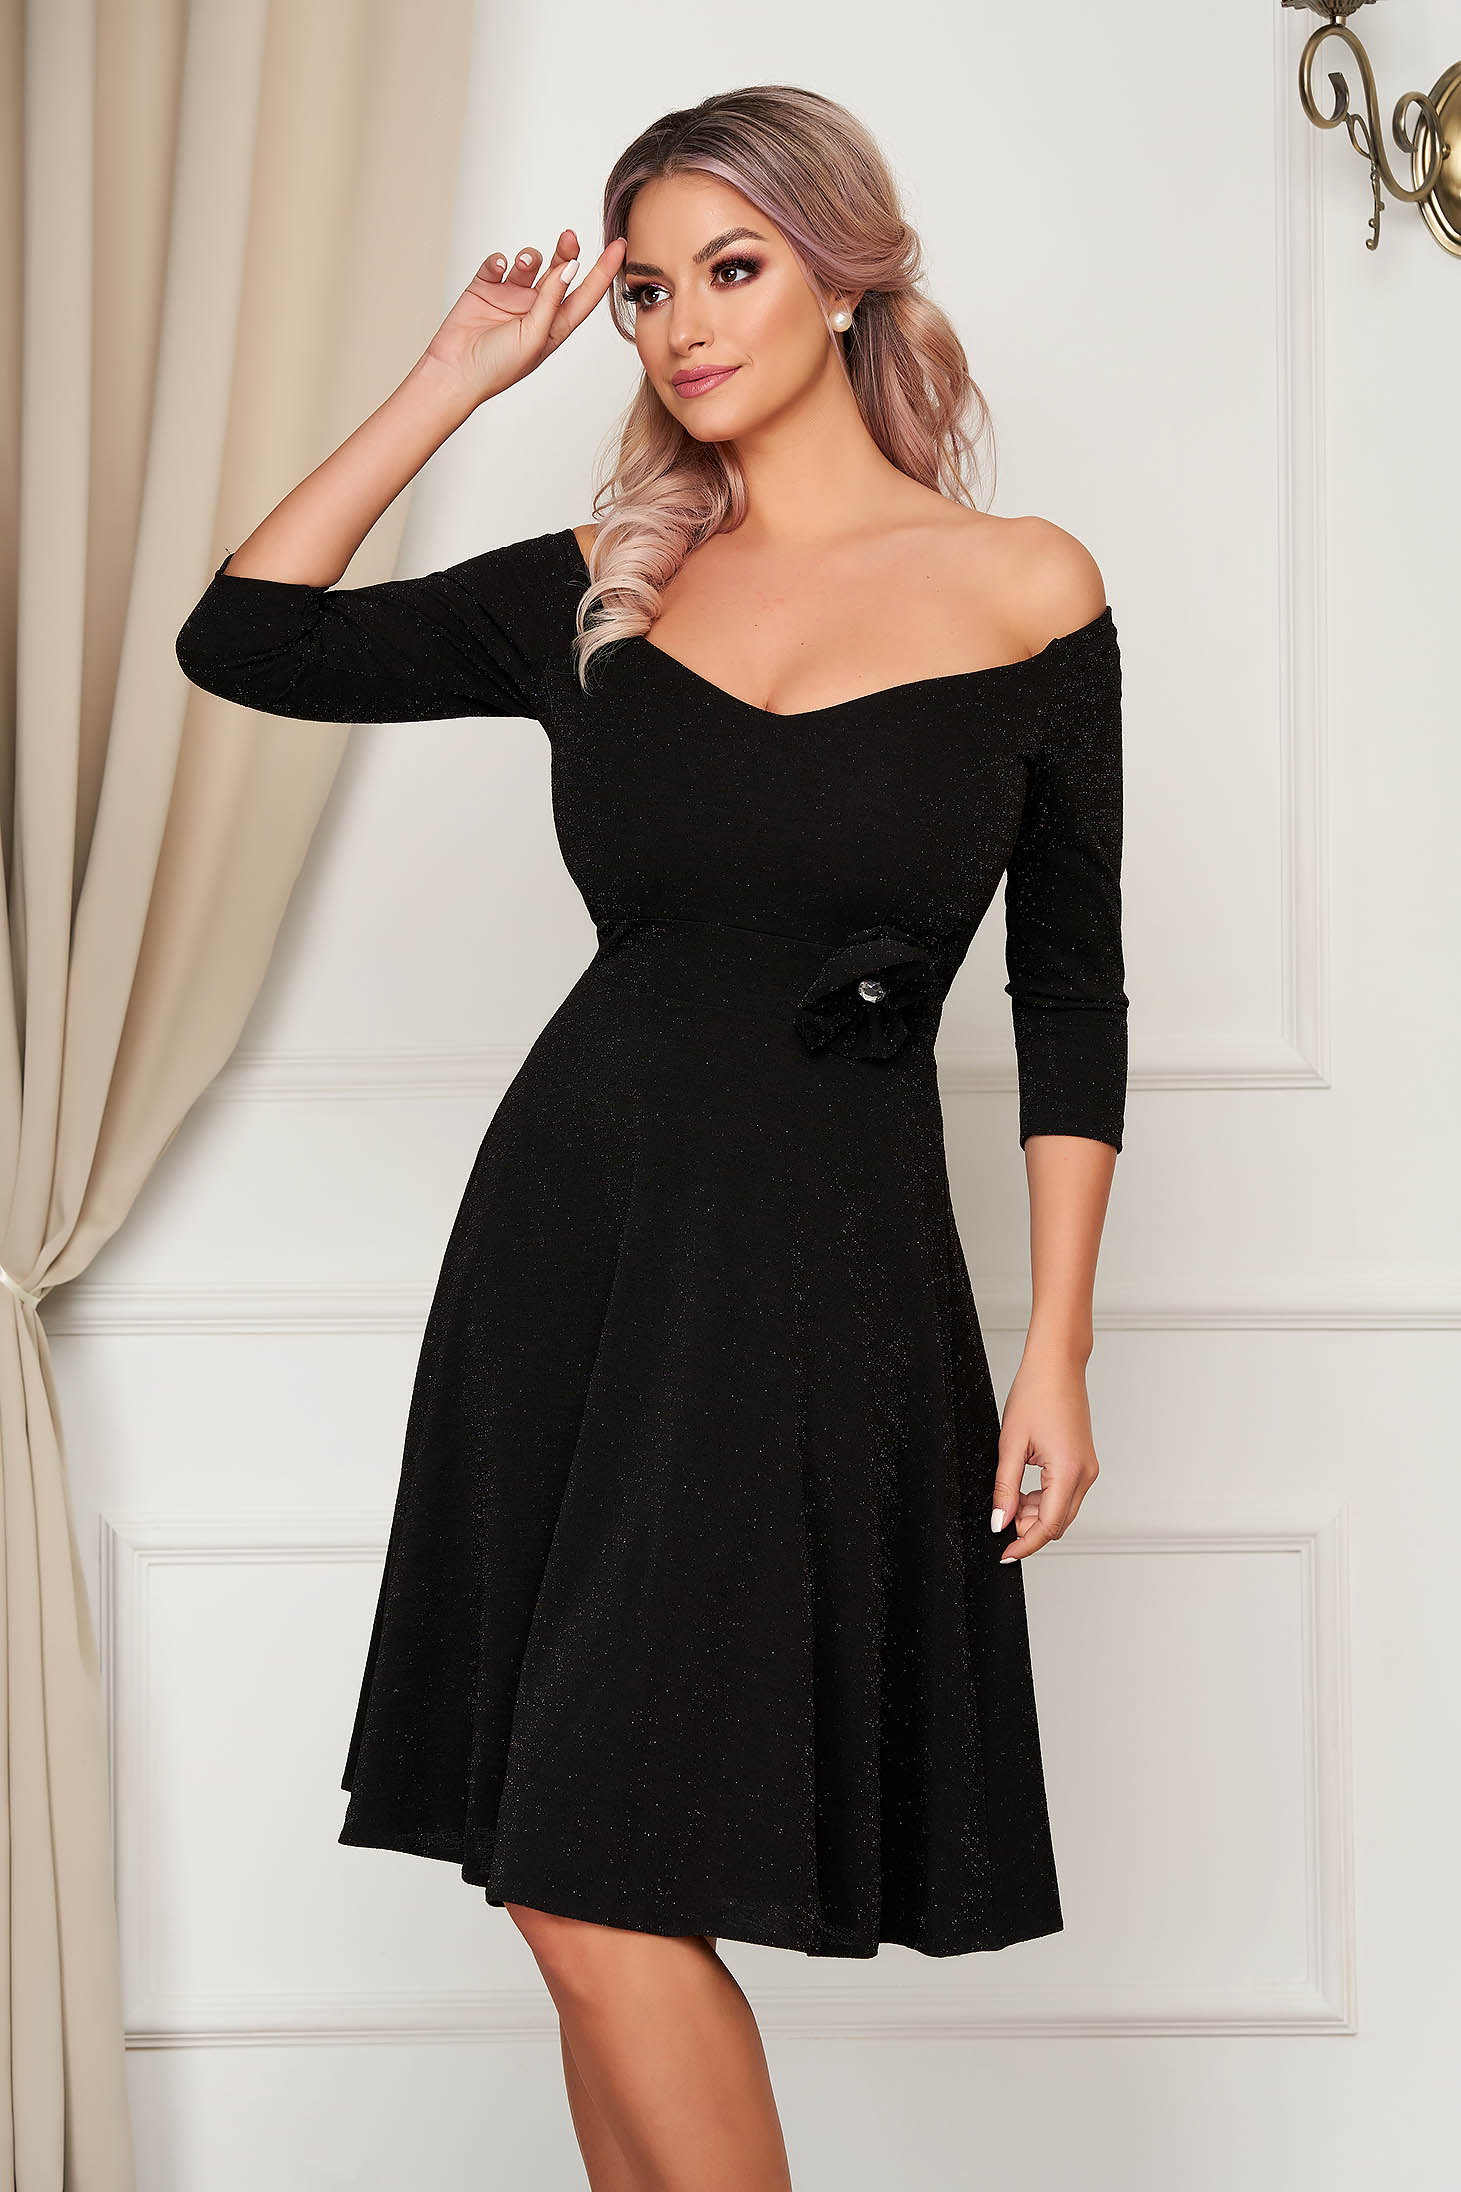 Dress StarShinerS black occasional midi cloche scuba with flower shaped brestpin